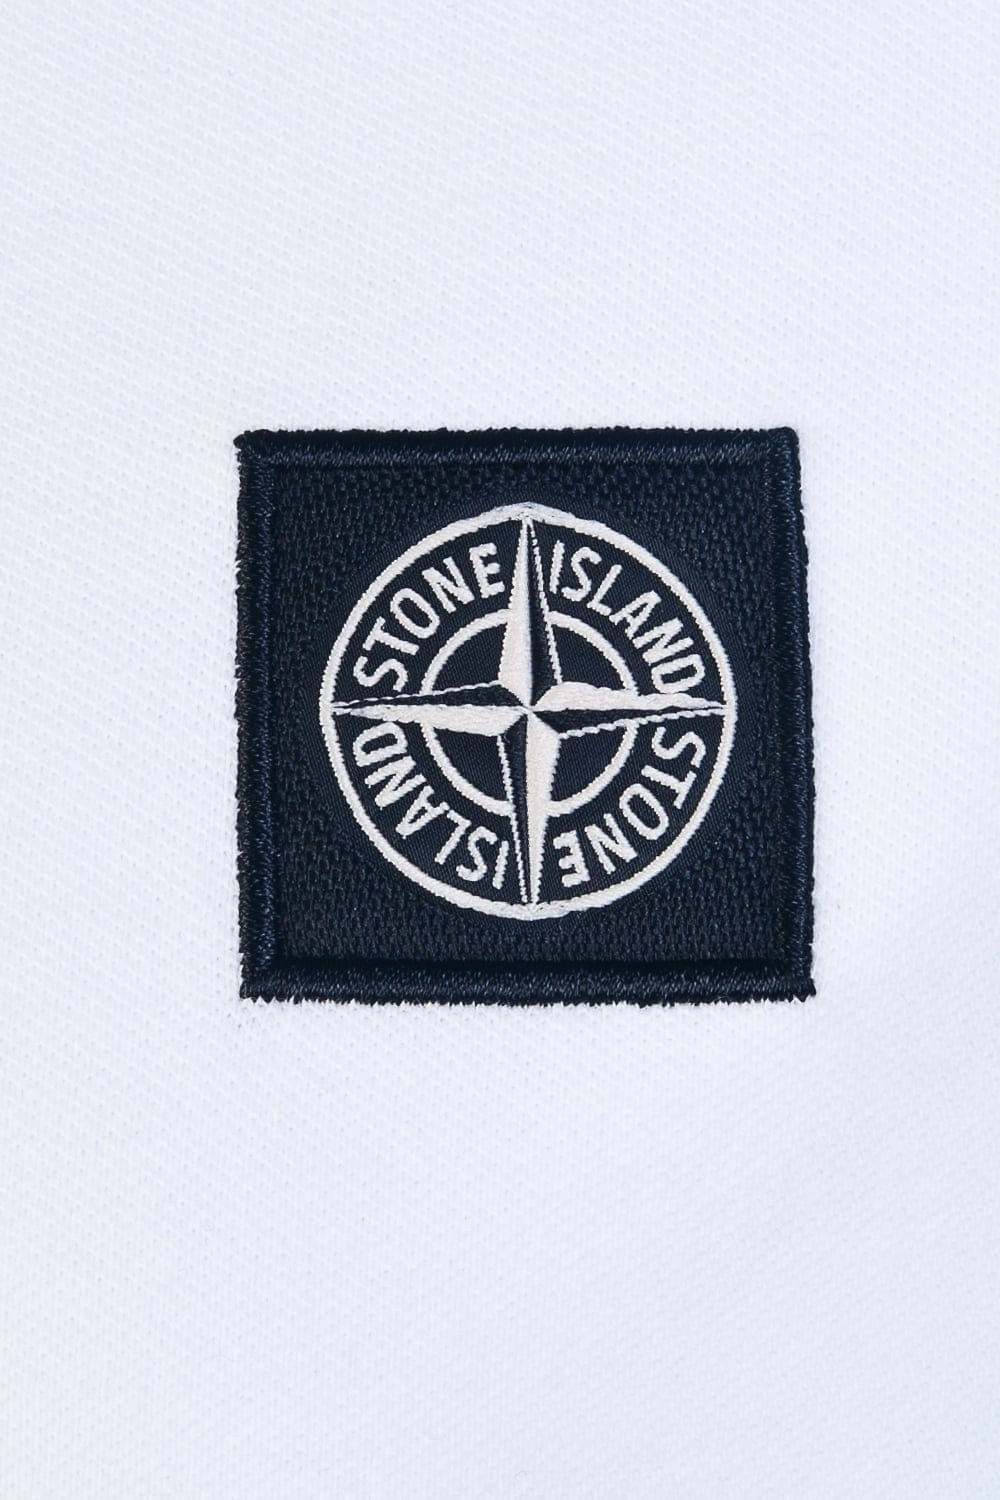 Stone Island Polo Top 65152SS18 - Stone Island from Sage Clothing UK